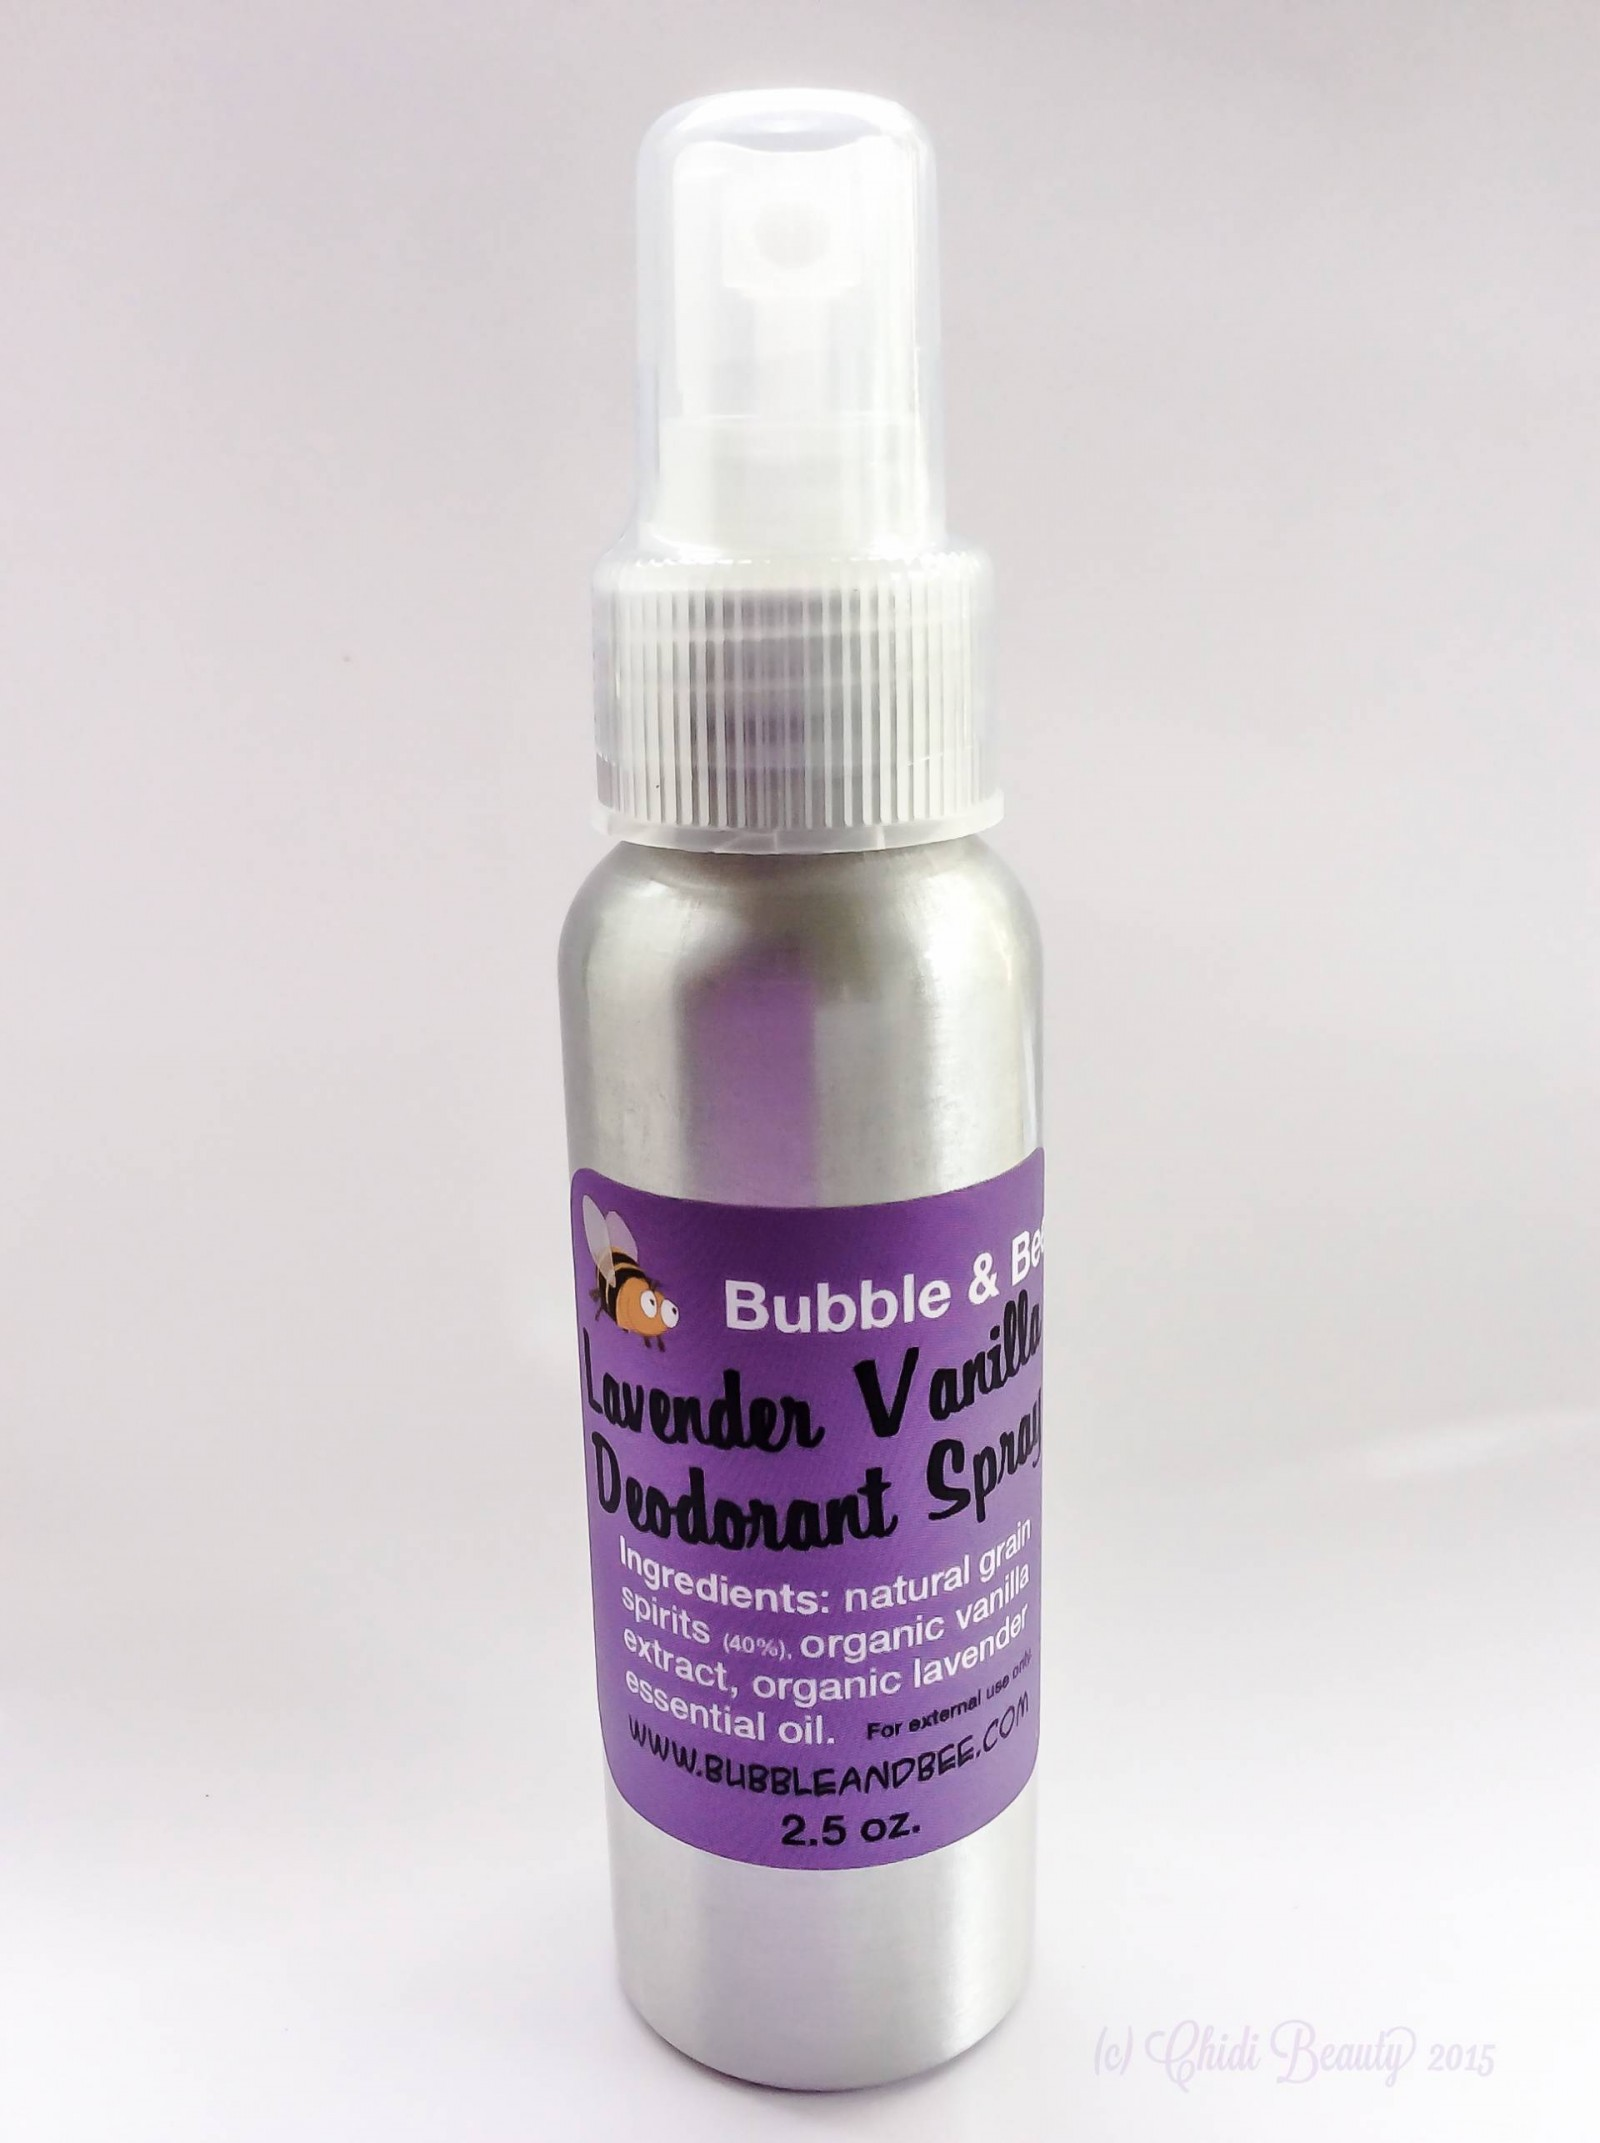 Bubble & Bee Deodorant Spray in Lavender Vanilla